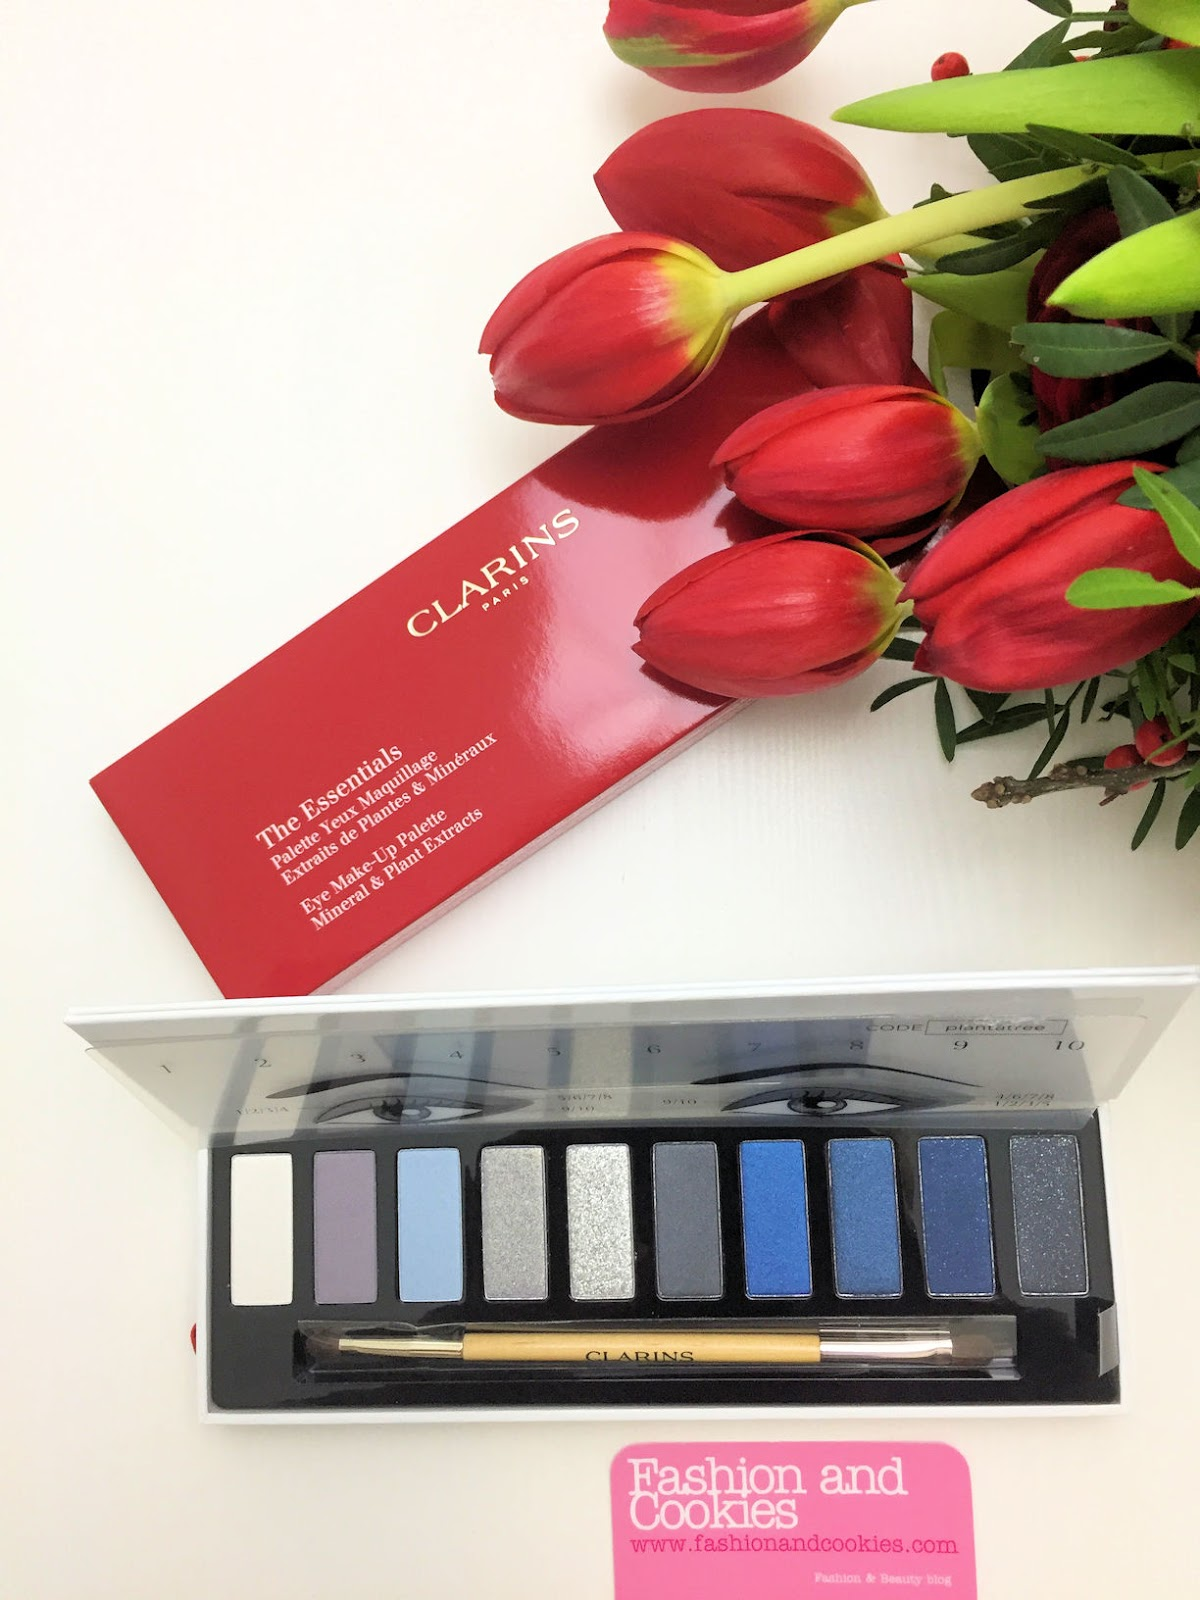 Makeup feste natalizie: palette occhi Clarins The Essentials su Fashion and Cookies beauty blog, beauty blogger